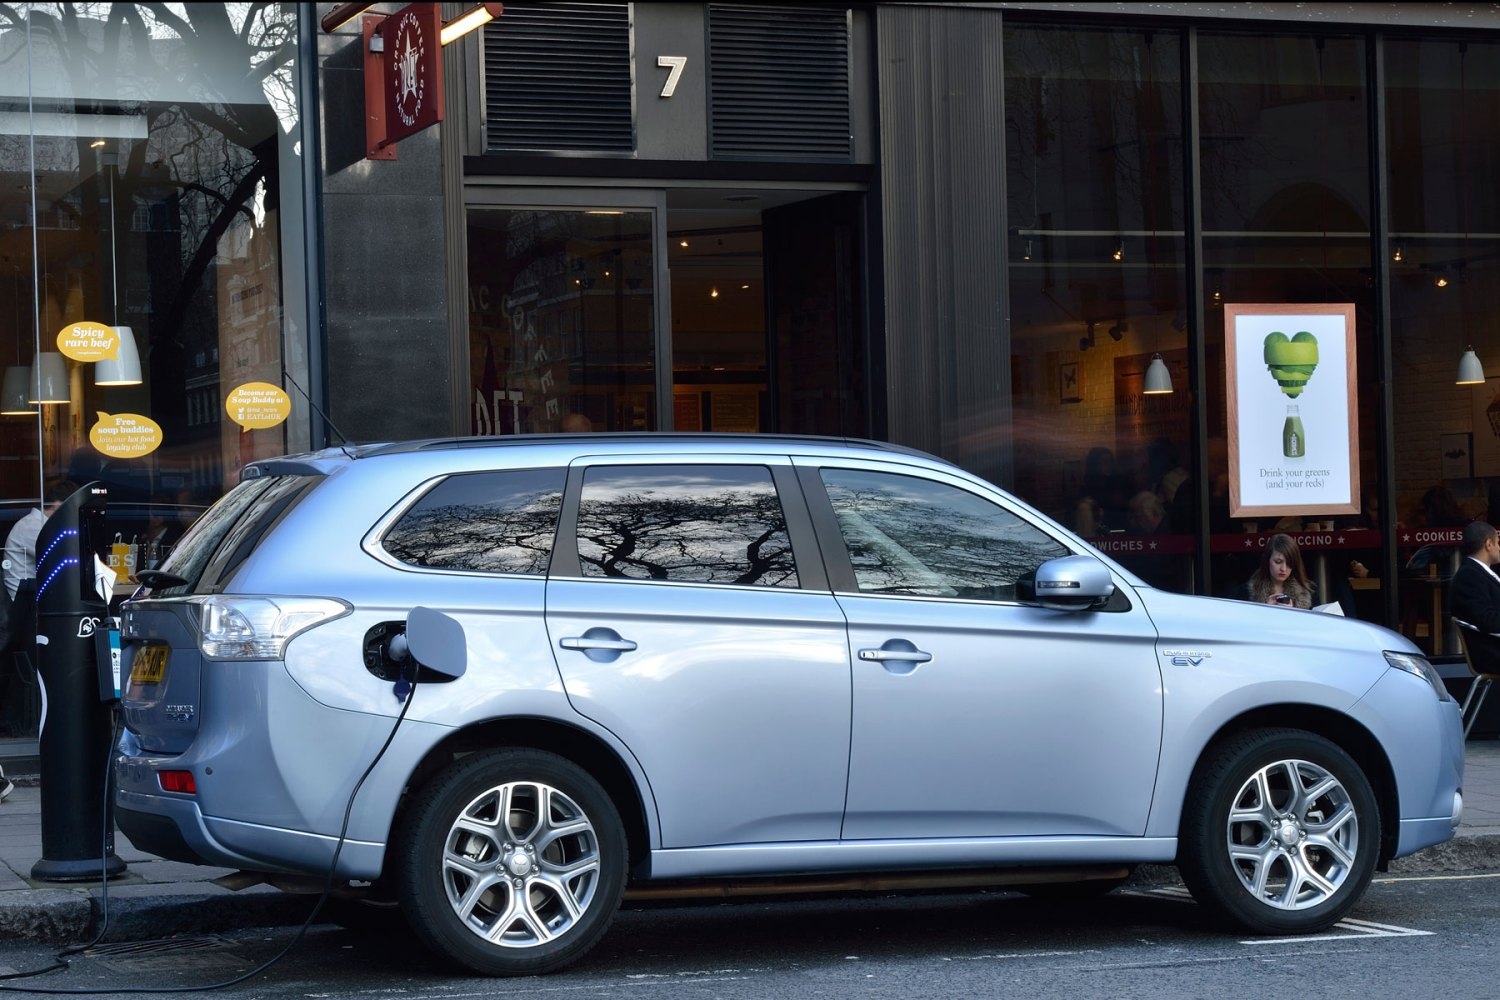 Mitsubishi hits out at 'irresponsible' claims that MPG figures are misleading